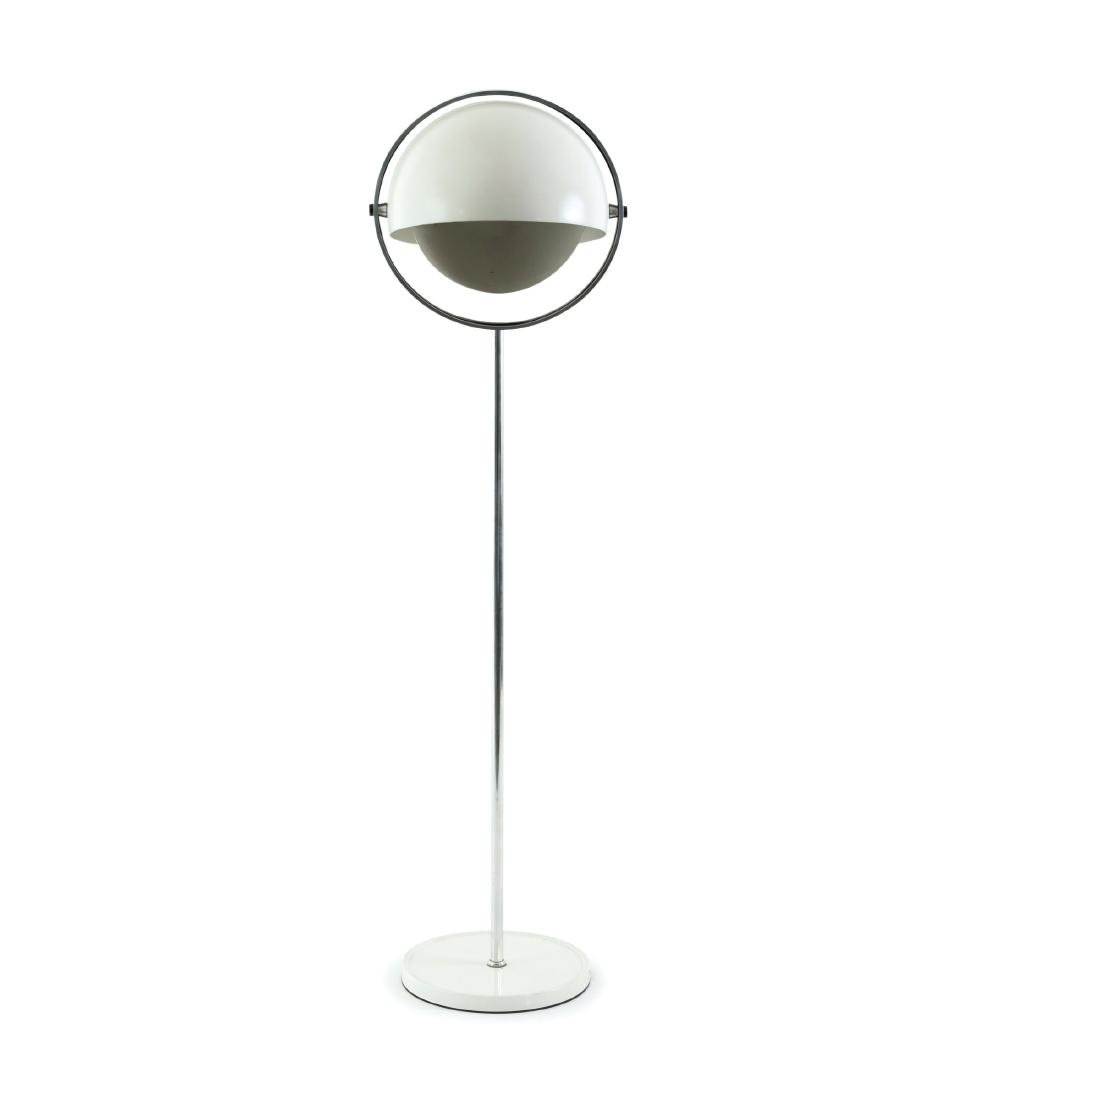 'Moonlight' floor lamp, 1963